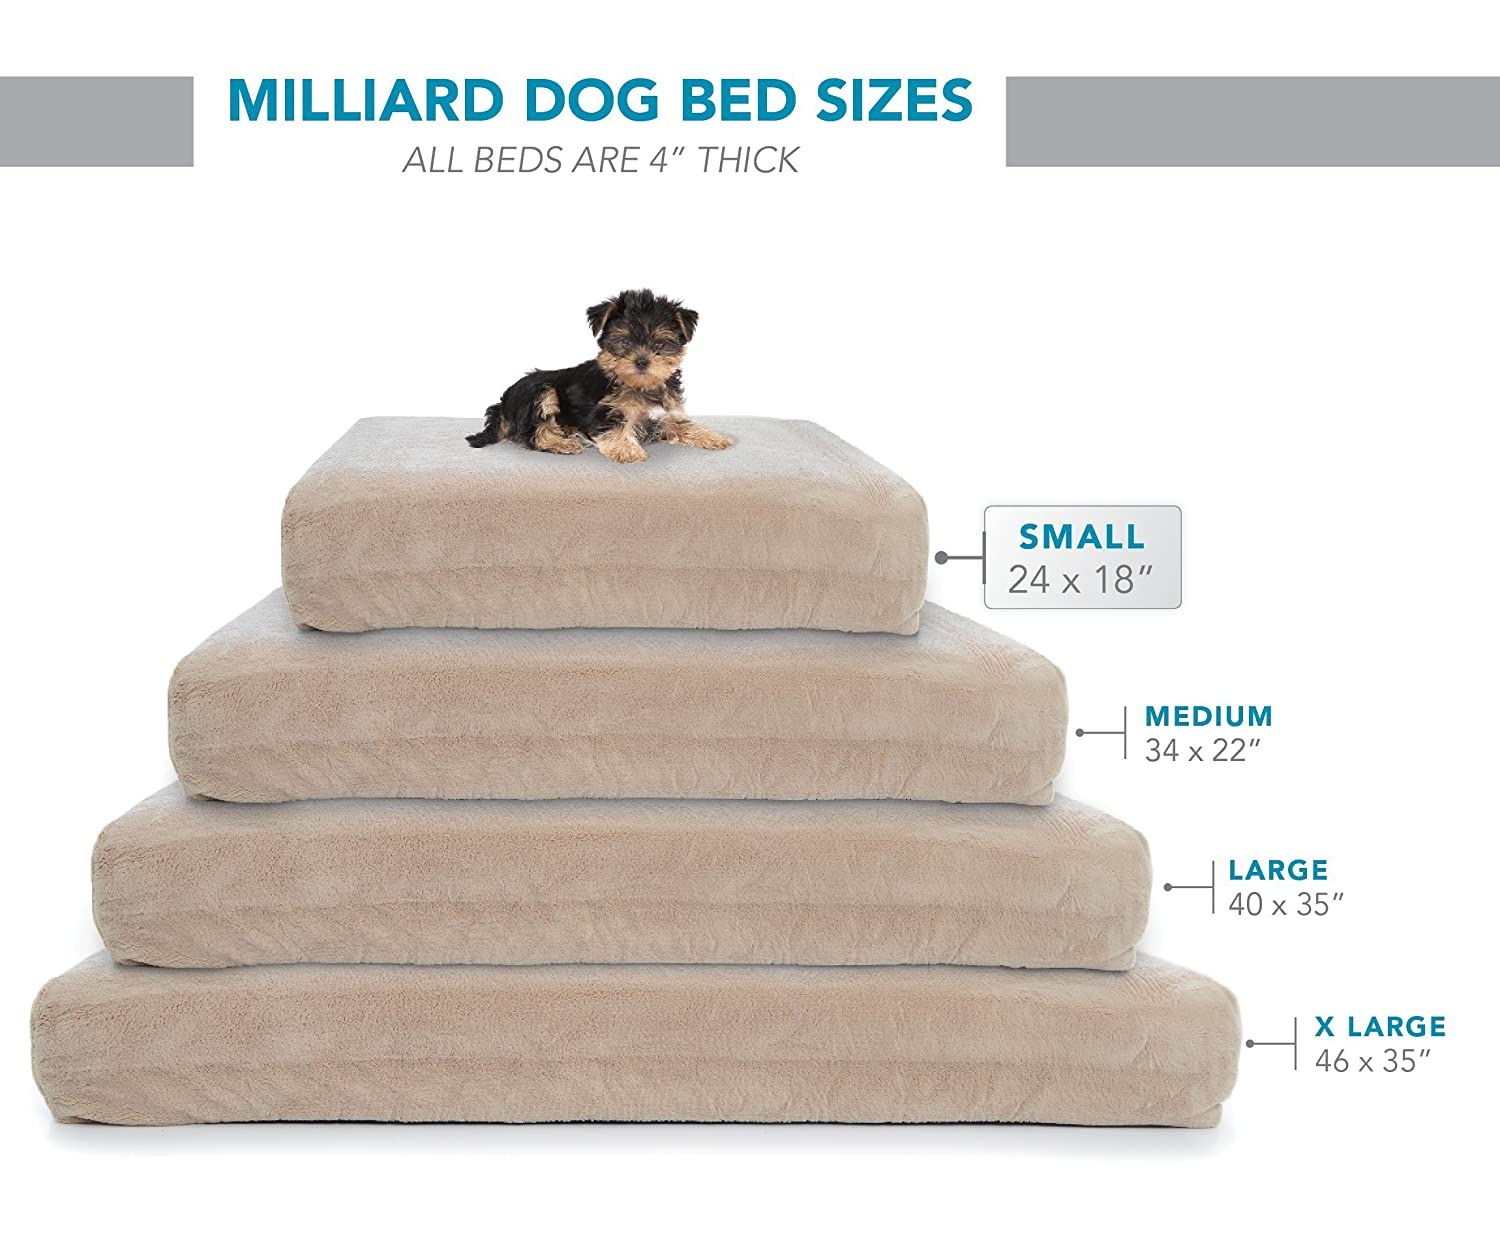 Milliard Premium Orthopedic Memory Foam Dog Bed with Anti-Microbial Removable Waterproof Washable Non-Slip Cover - Small - 24 inches x 18 inches x 4 inches